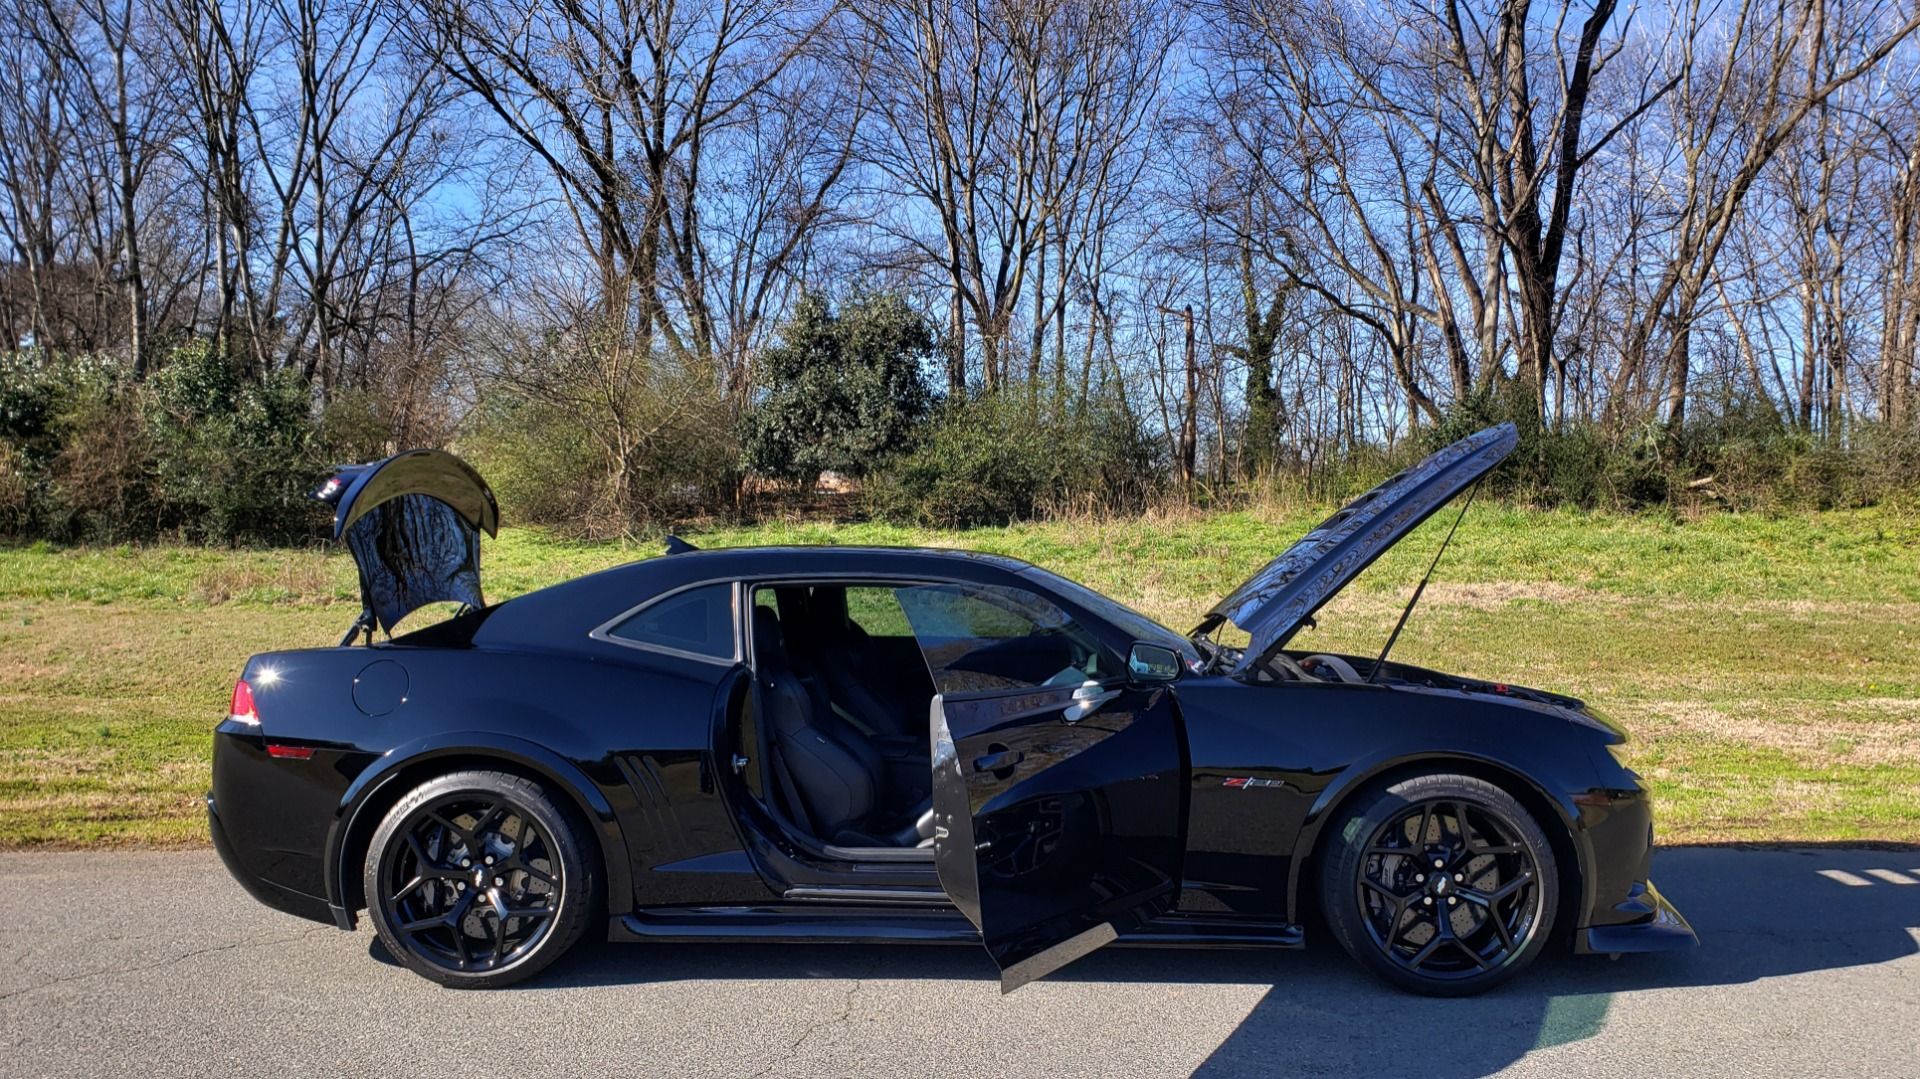 Used 2014 Chevrolet CAMARO Z/28 / 427 7.0L V8 505HP / RADIO / AIR CONDITIONING for sale Sold at Formula Imports in Charlotte NC 28227 36